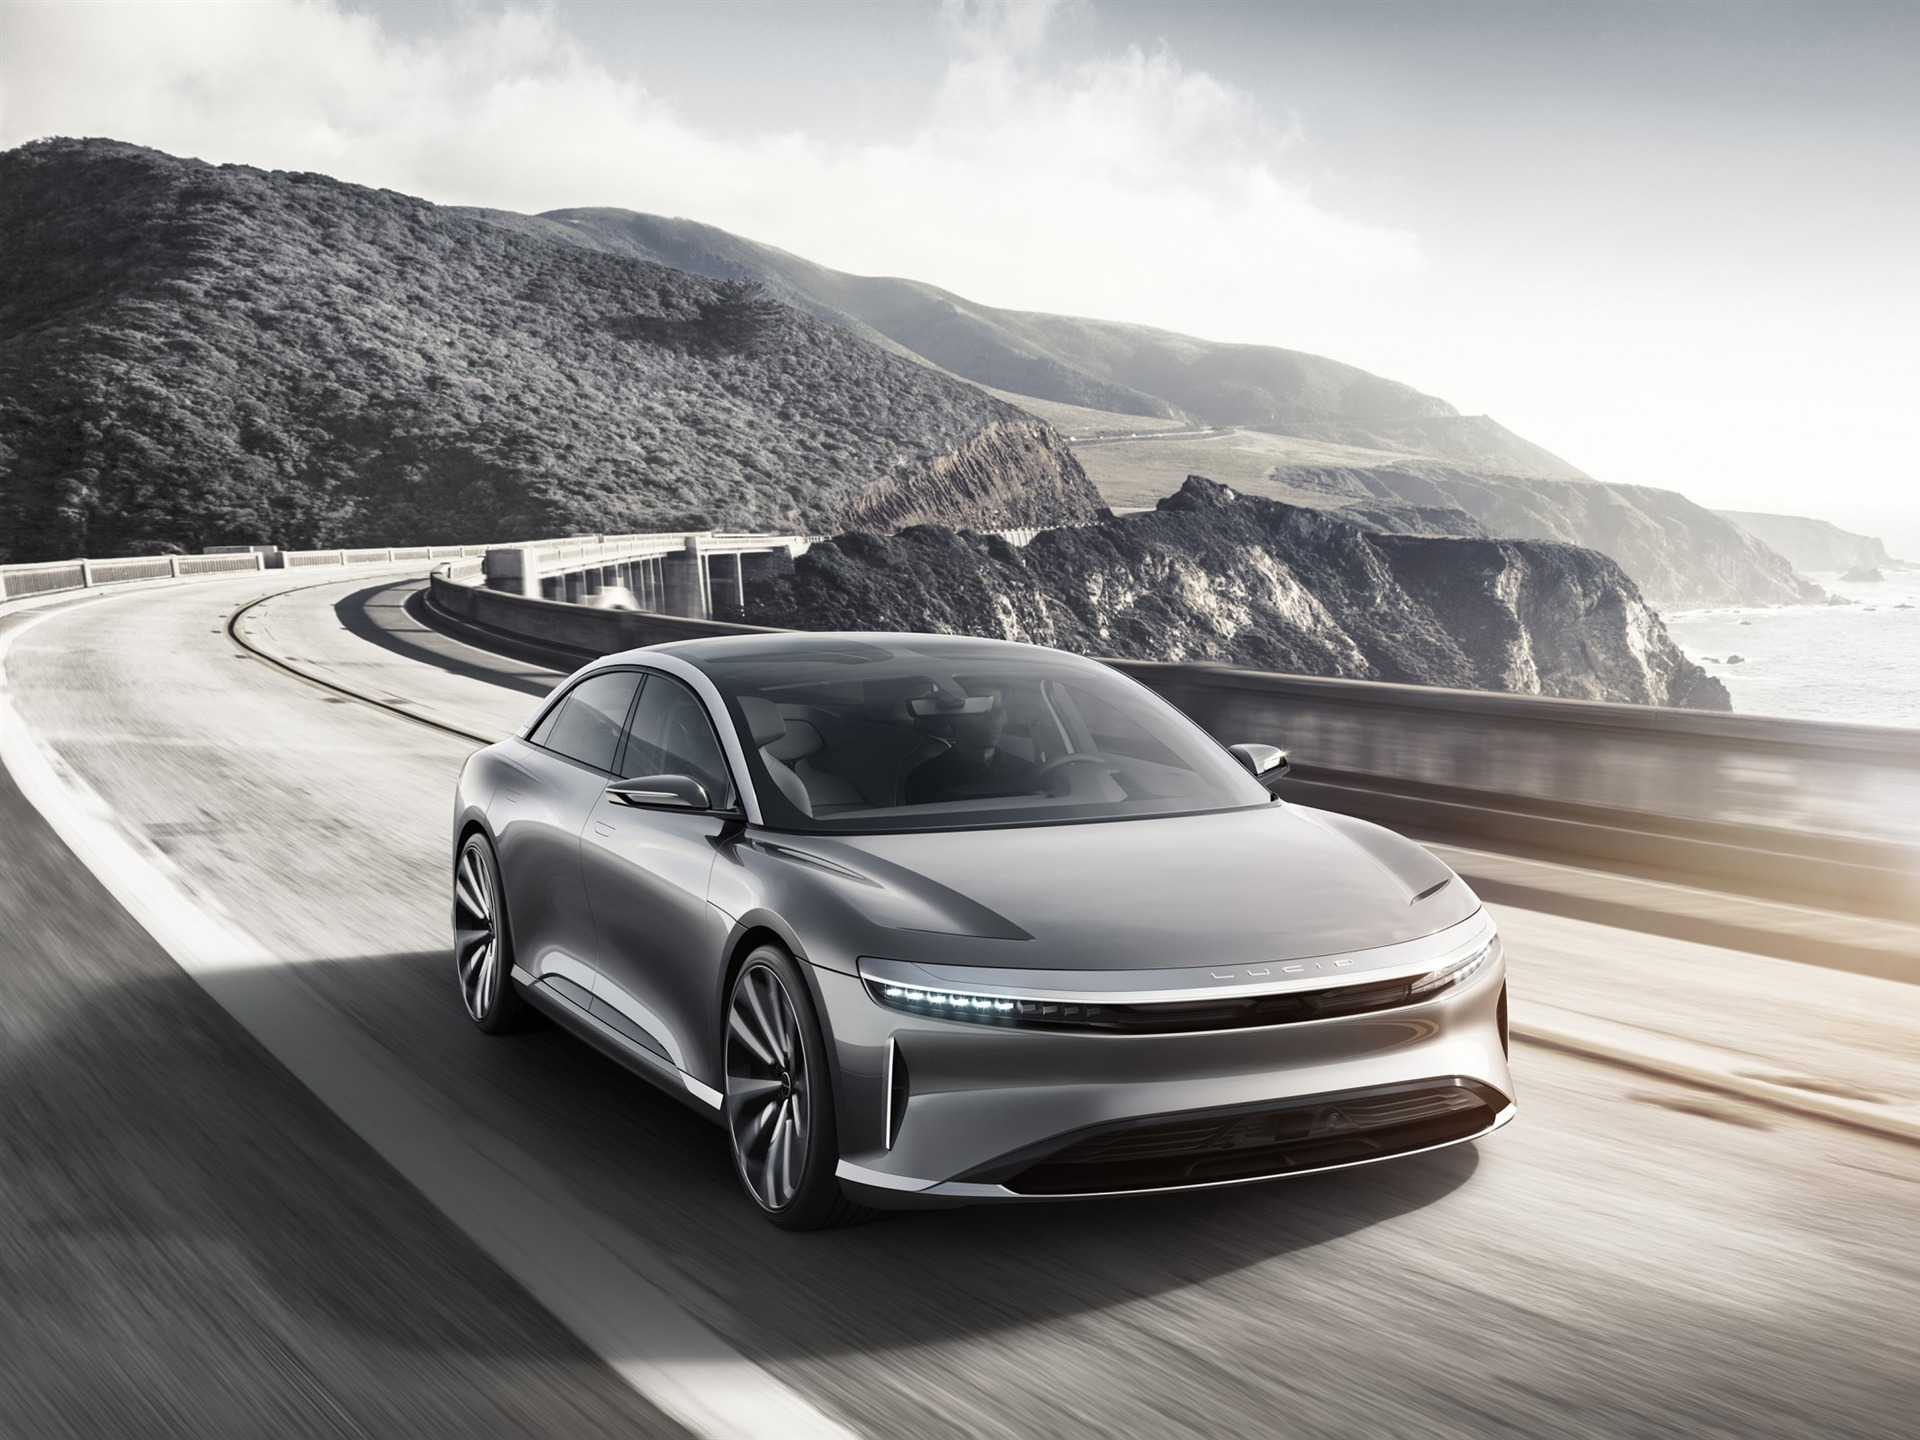 Lucid air luxury electric car-Brand Car HD Wallpaper - 1920x1440 wallpaper download